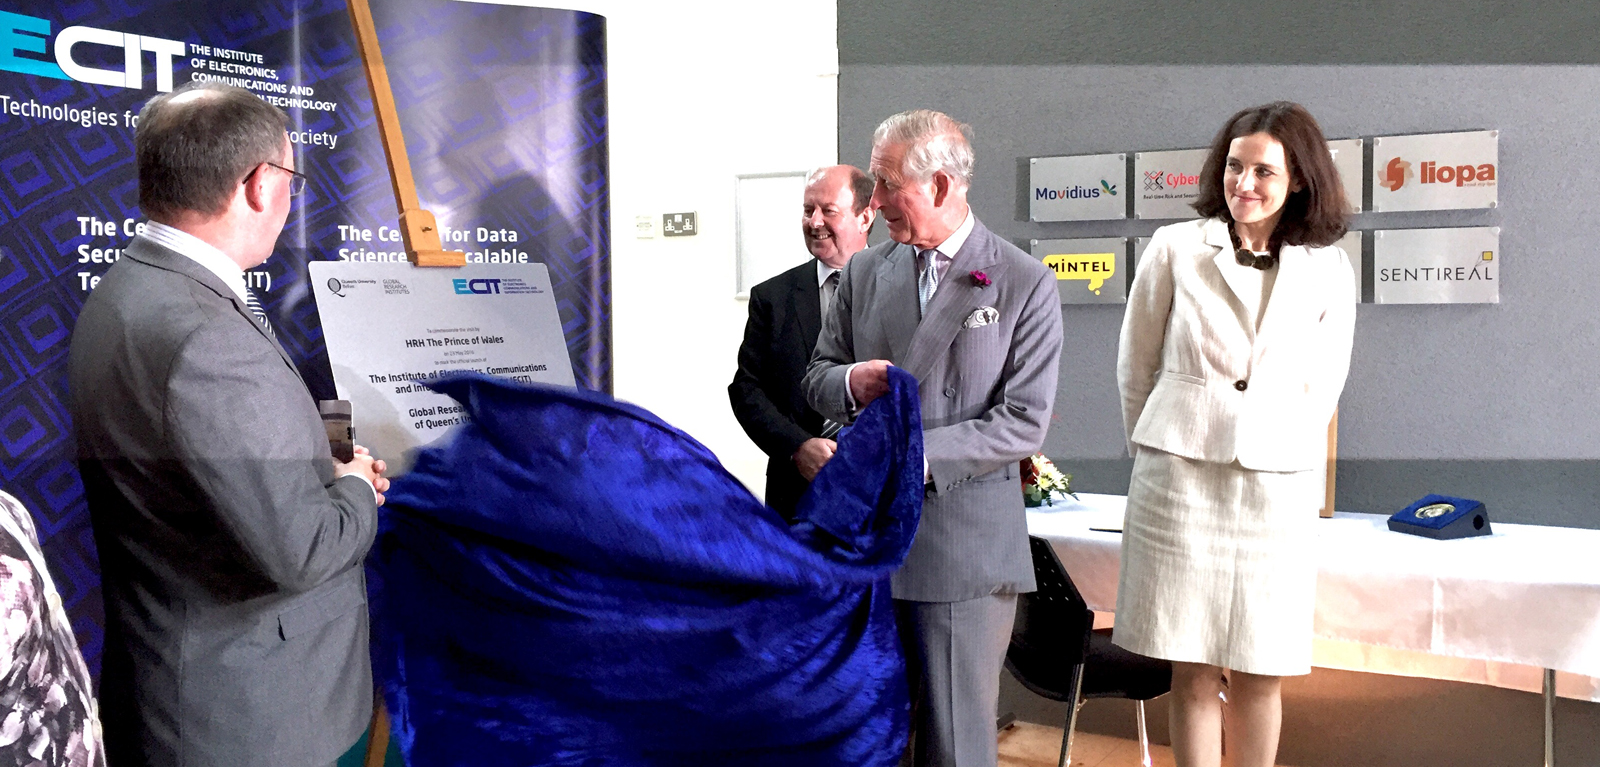 HRH The Prince of Wales ECIT GRI Launch